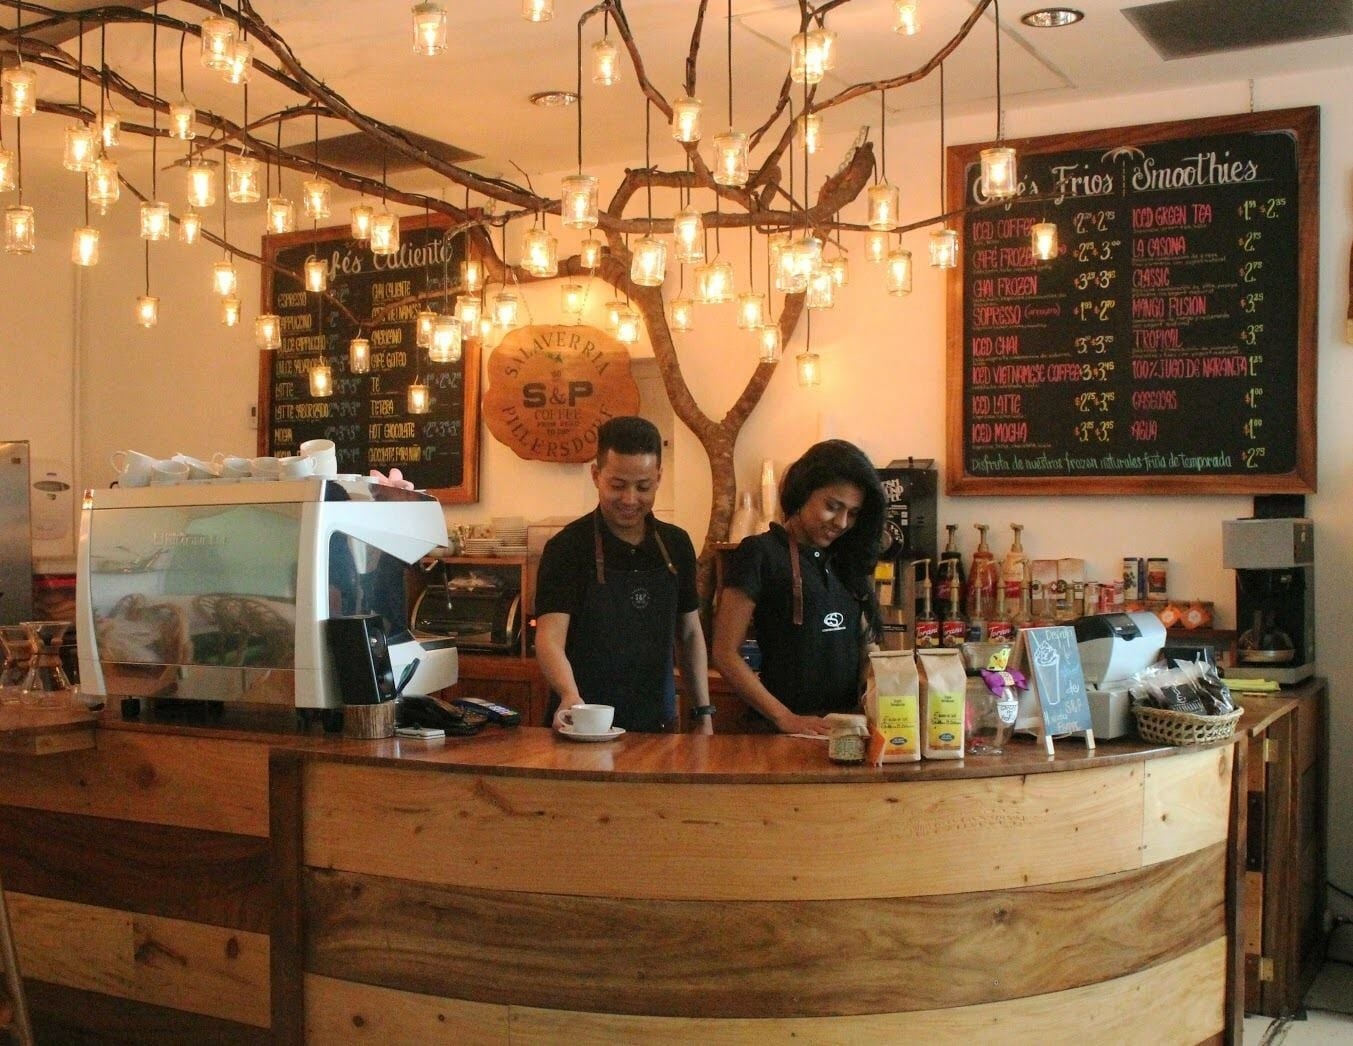 coffee shop observation Free essays on observation report coffee shops philippines use our research documents to help you learn 1 - 25.